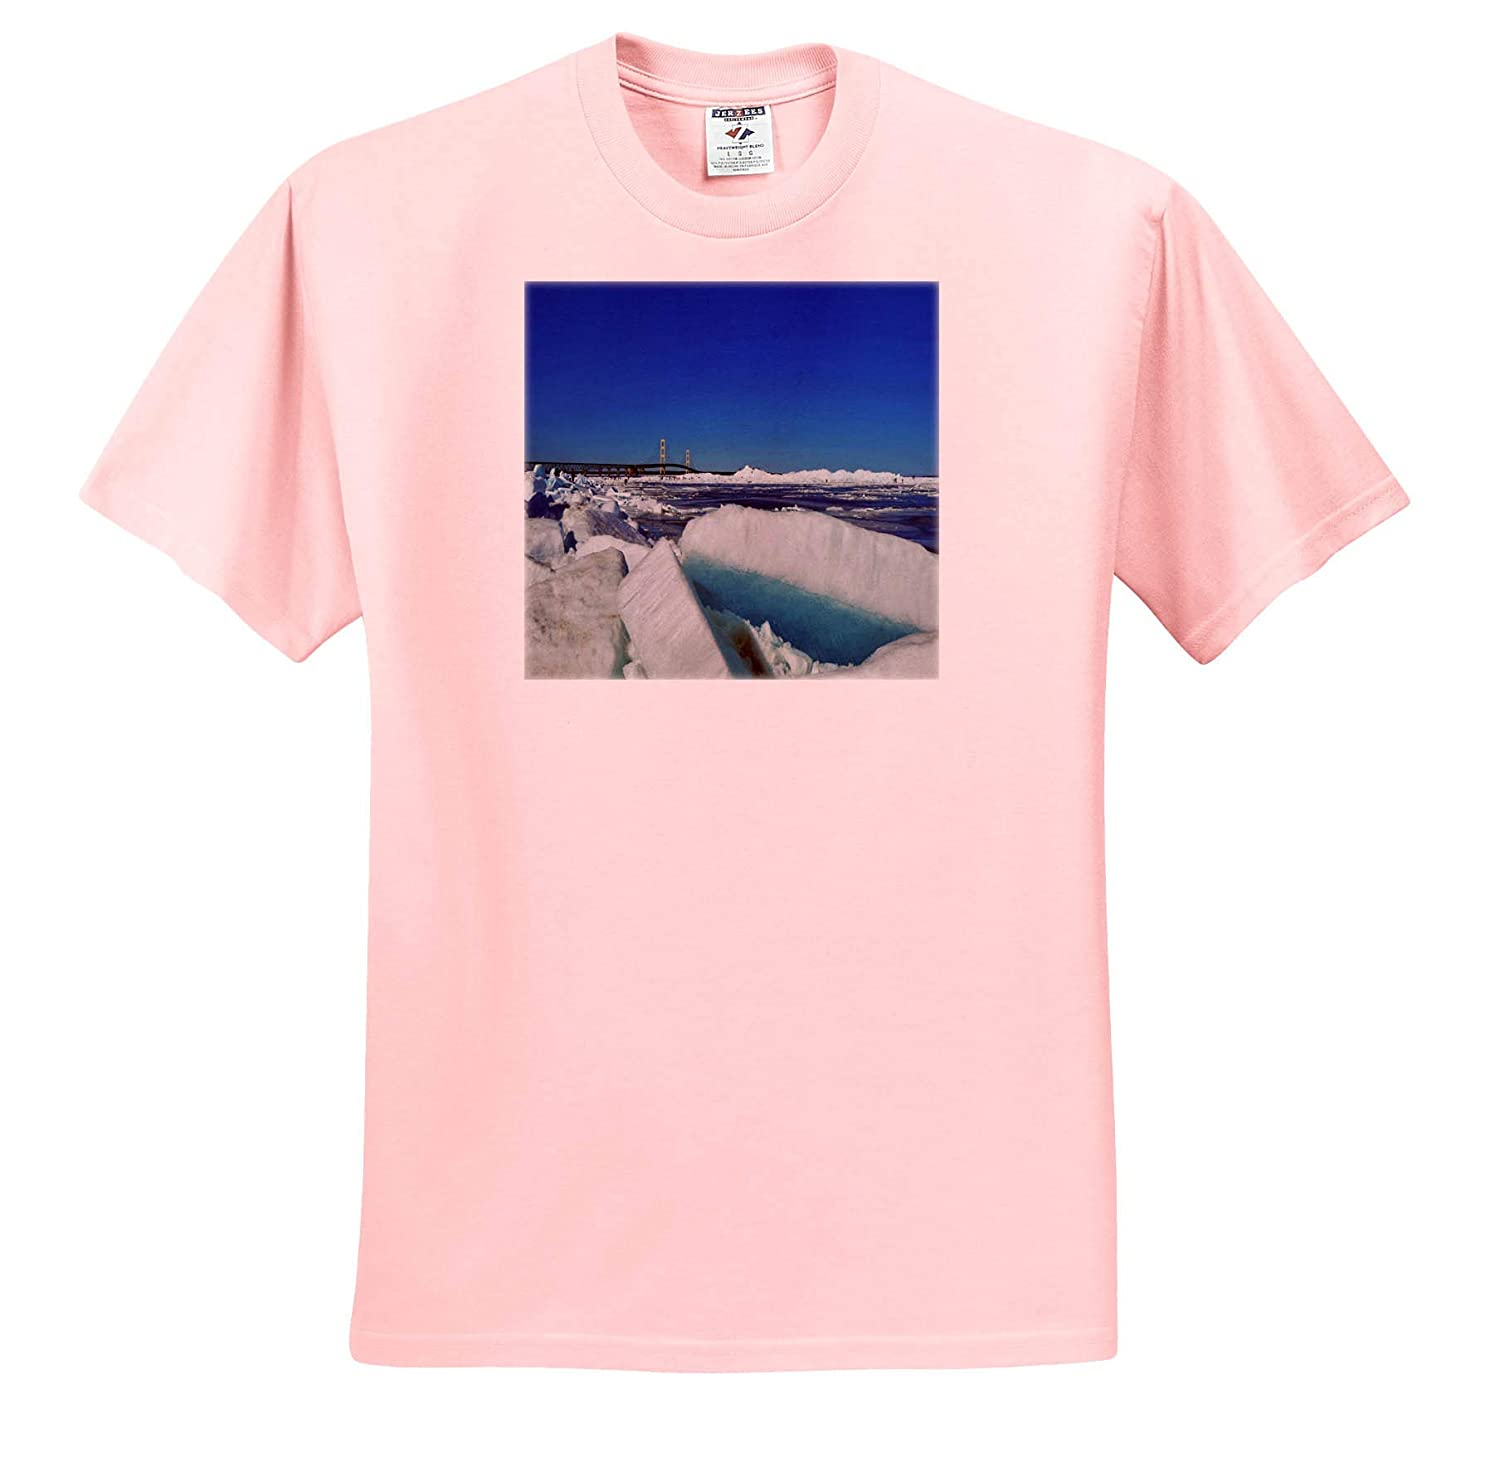 3dRose Dreamscapes by Leslie Scenery Blue ice on Lake Huron with Big Mac Backdrop ts/_314225 Adult T-Shirt XL